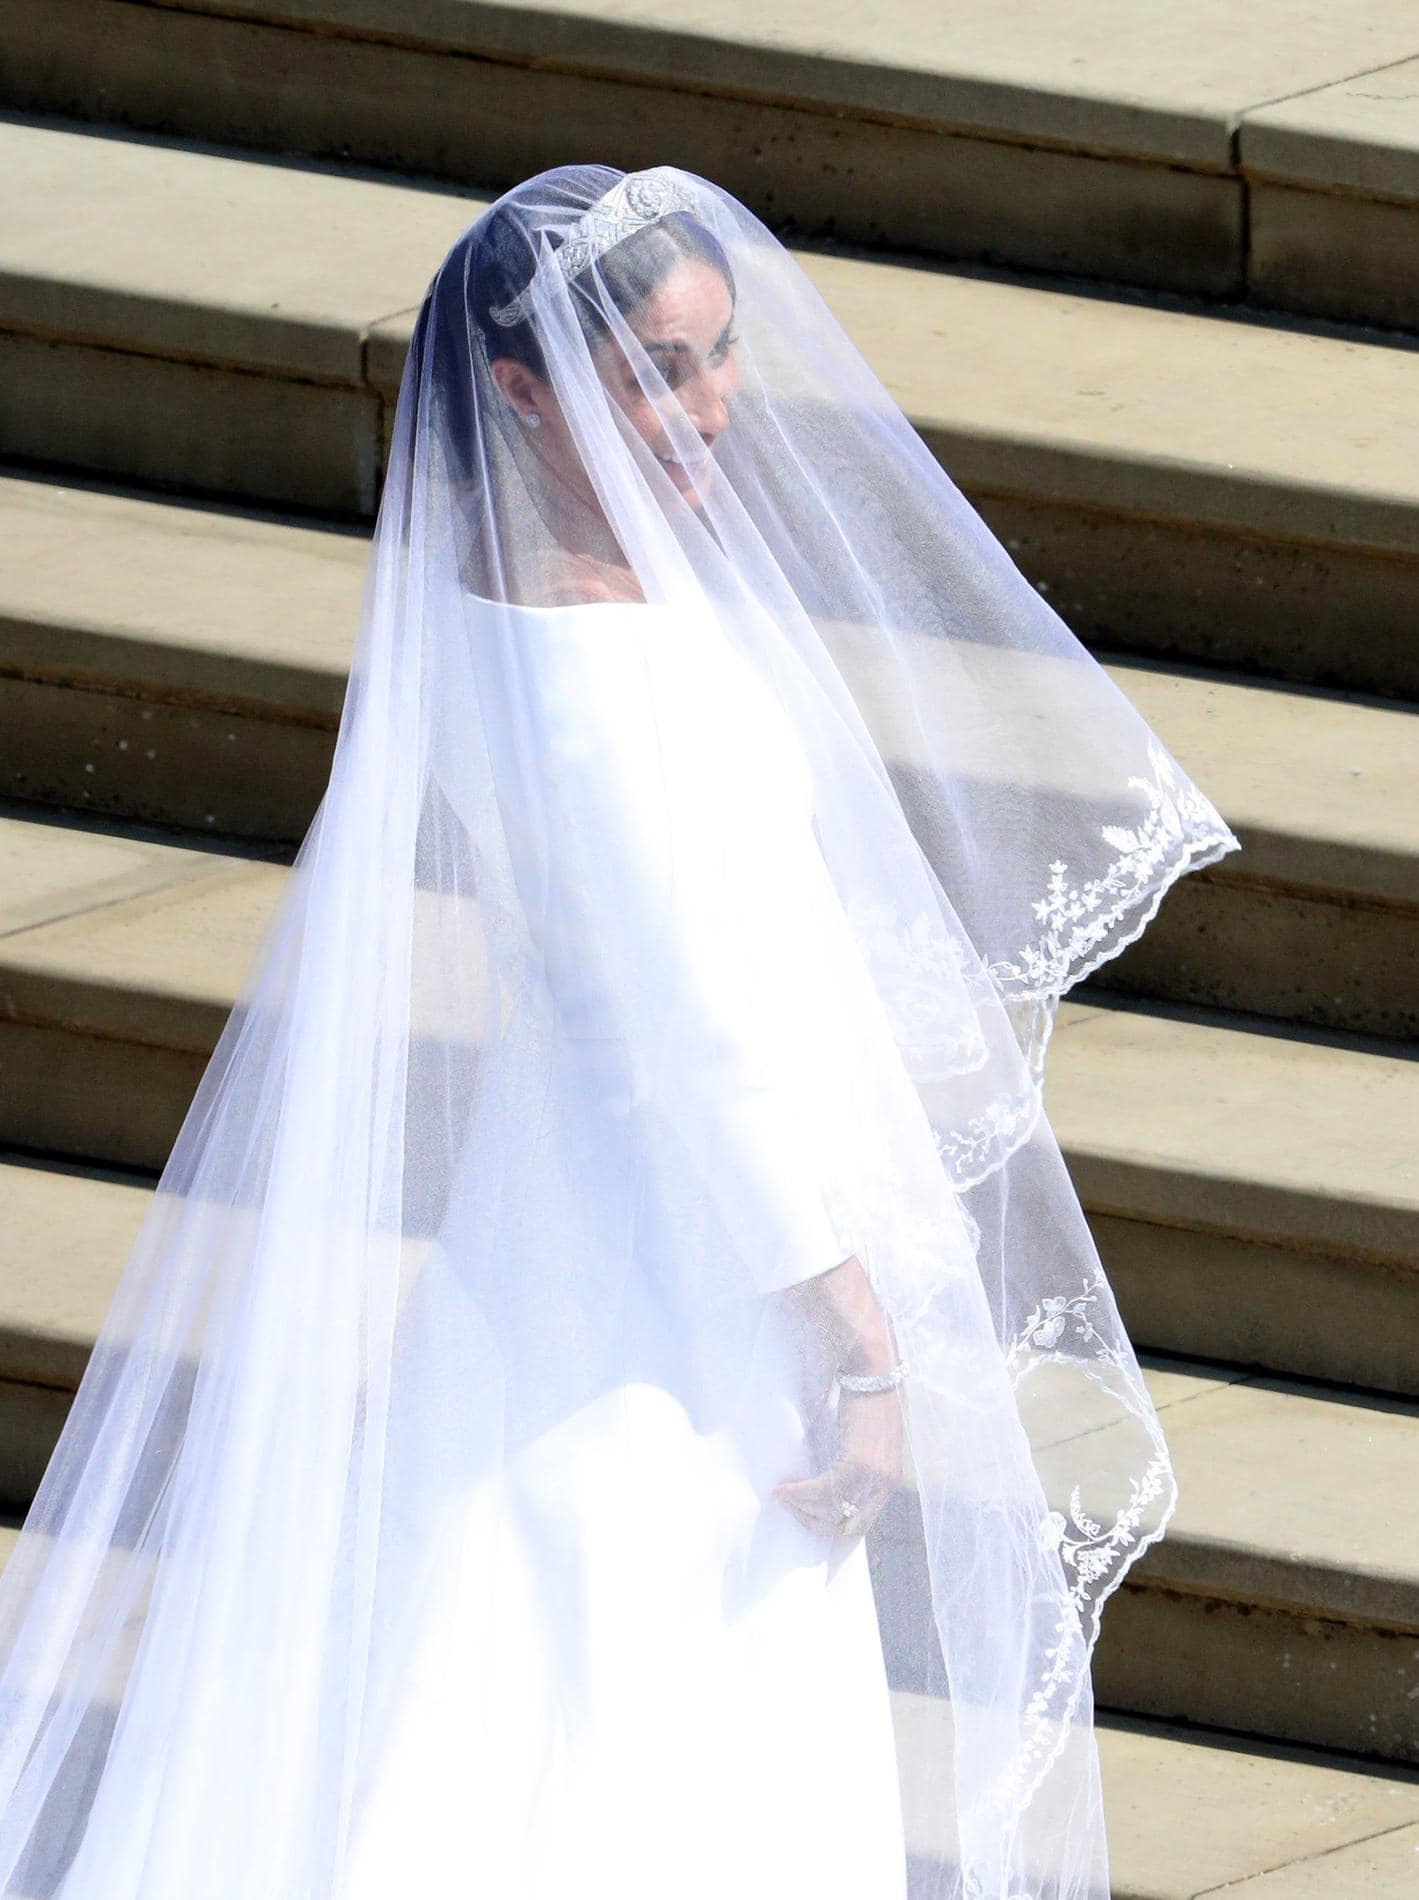 WINDSOR, UNITED KINGDOM - MAY 19: Meghan Markle arrives for her wedding to Prince Harry at St George's Chapel, Windsor Castle on May 19, 2018 in Windsor, England. (Photo by Andrew Matthews - WPA Pool/Getty Images) - Royal Wedding 2018 by Runway Magazine